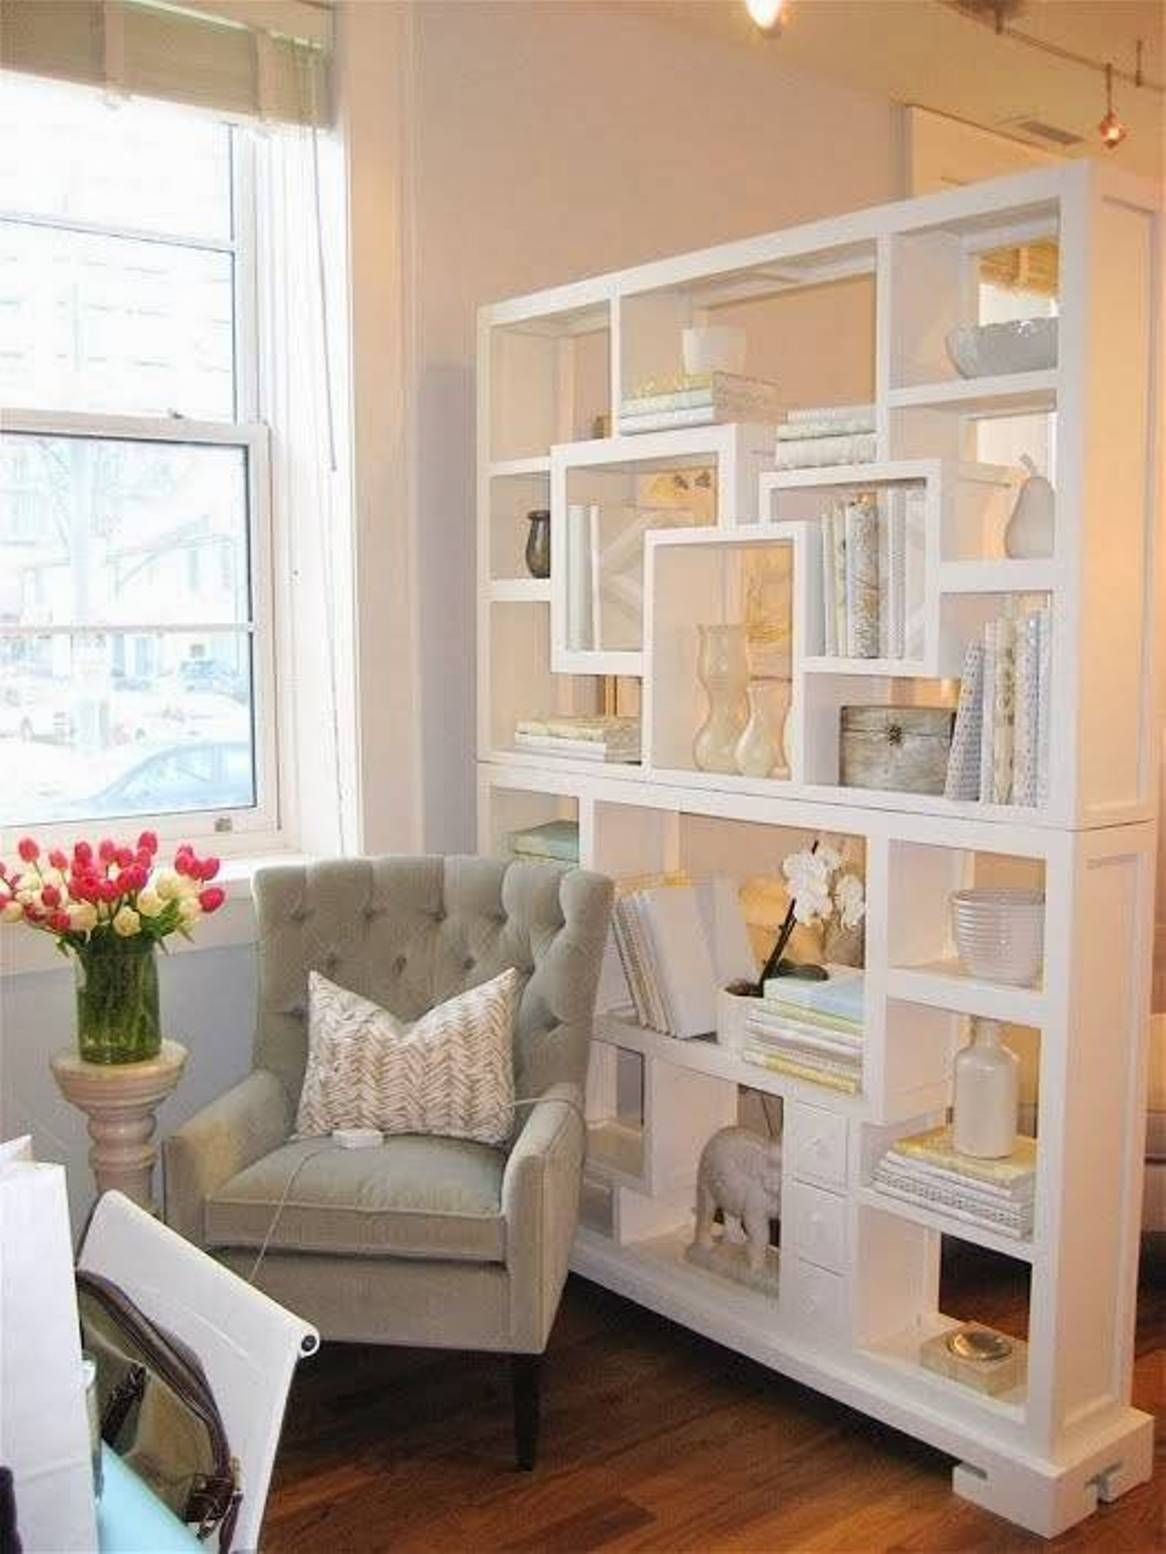 freestanding bookcase living room divider living room divider ideas apartment home decor. Black Bedroom Furniture Sets. Home Design Ideas